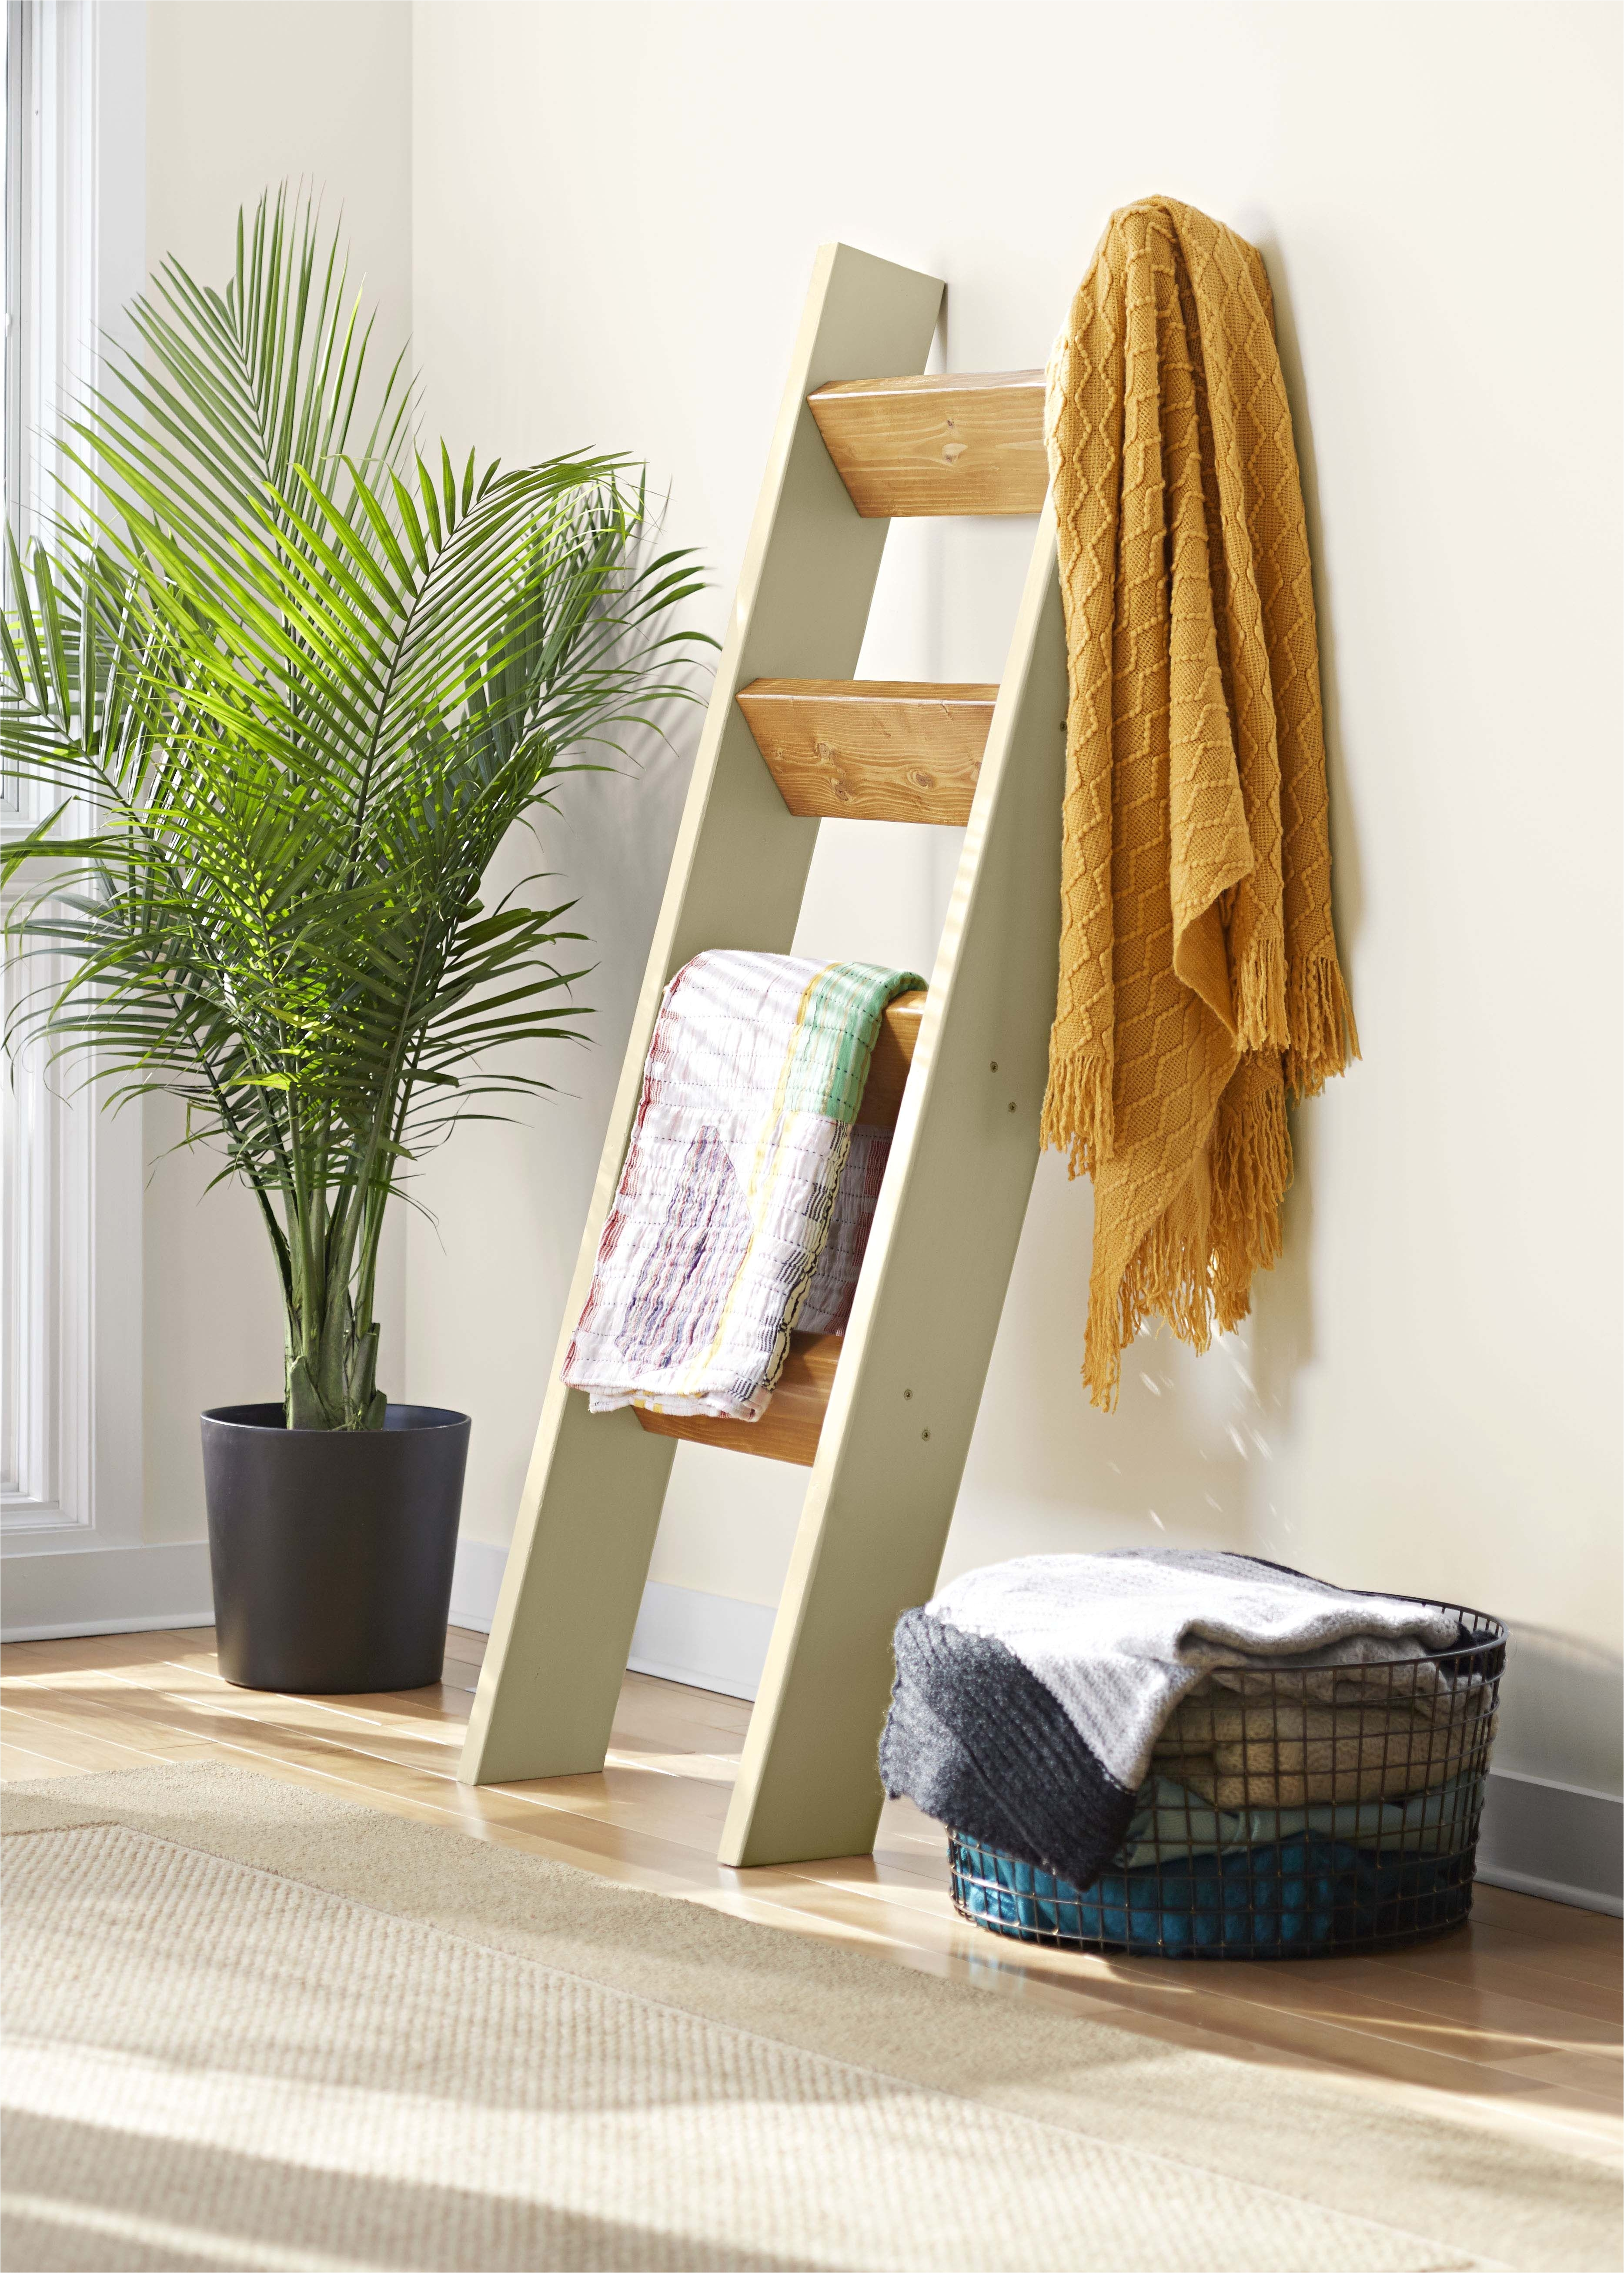 White Wall Mounted Quilt Rack Show Off Your Favorite Quilts Throws and Blankets by Draping them